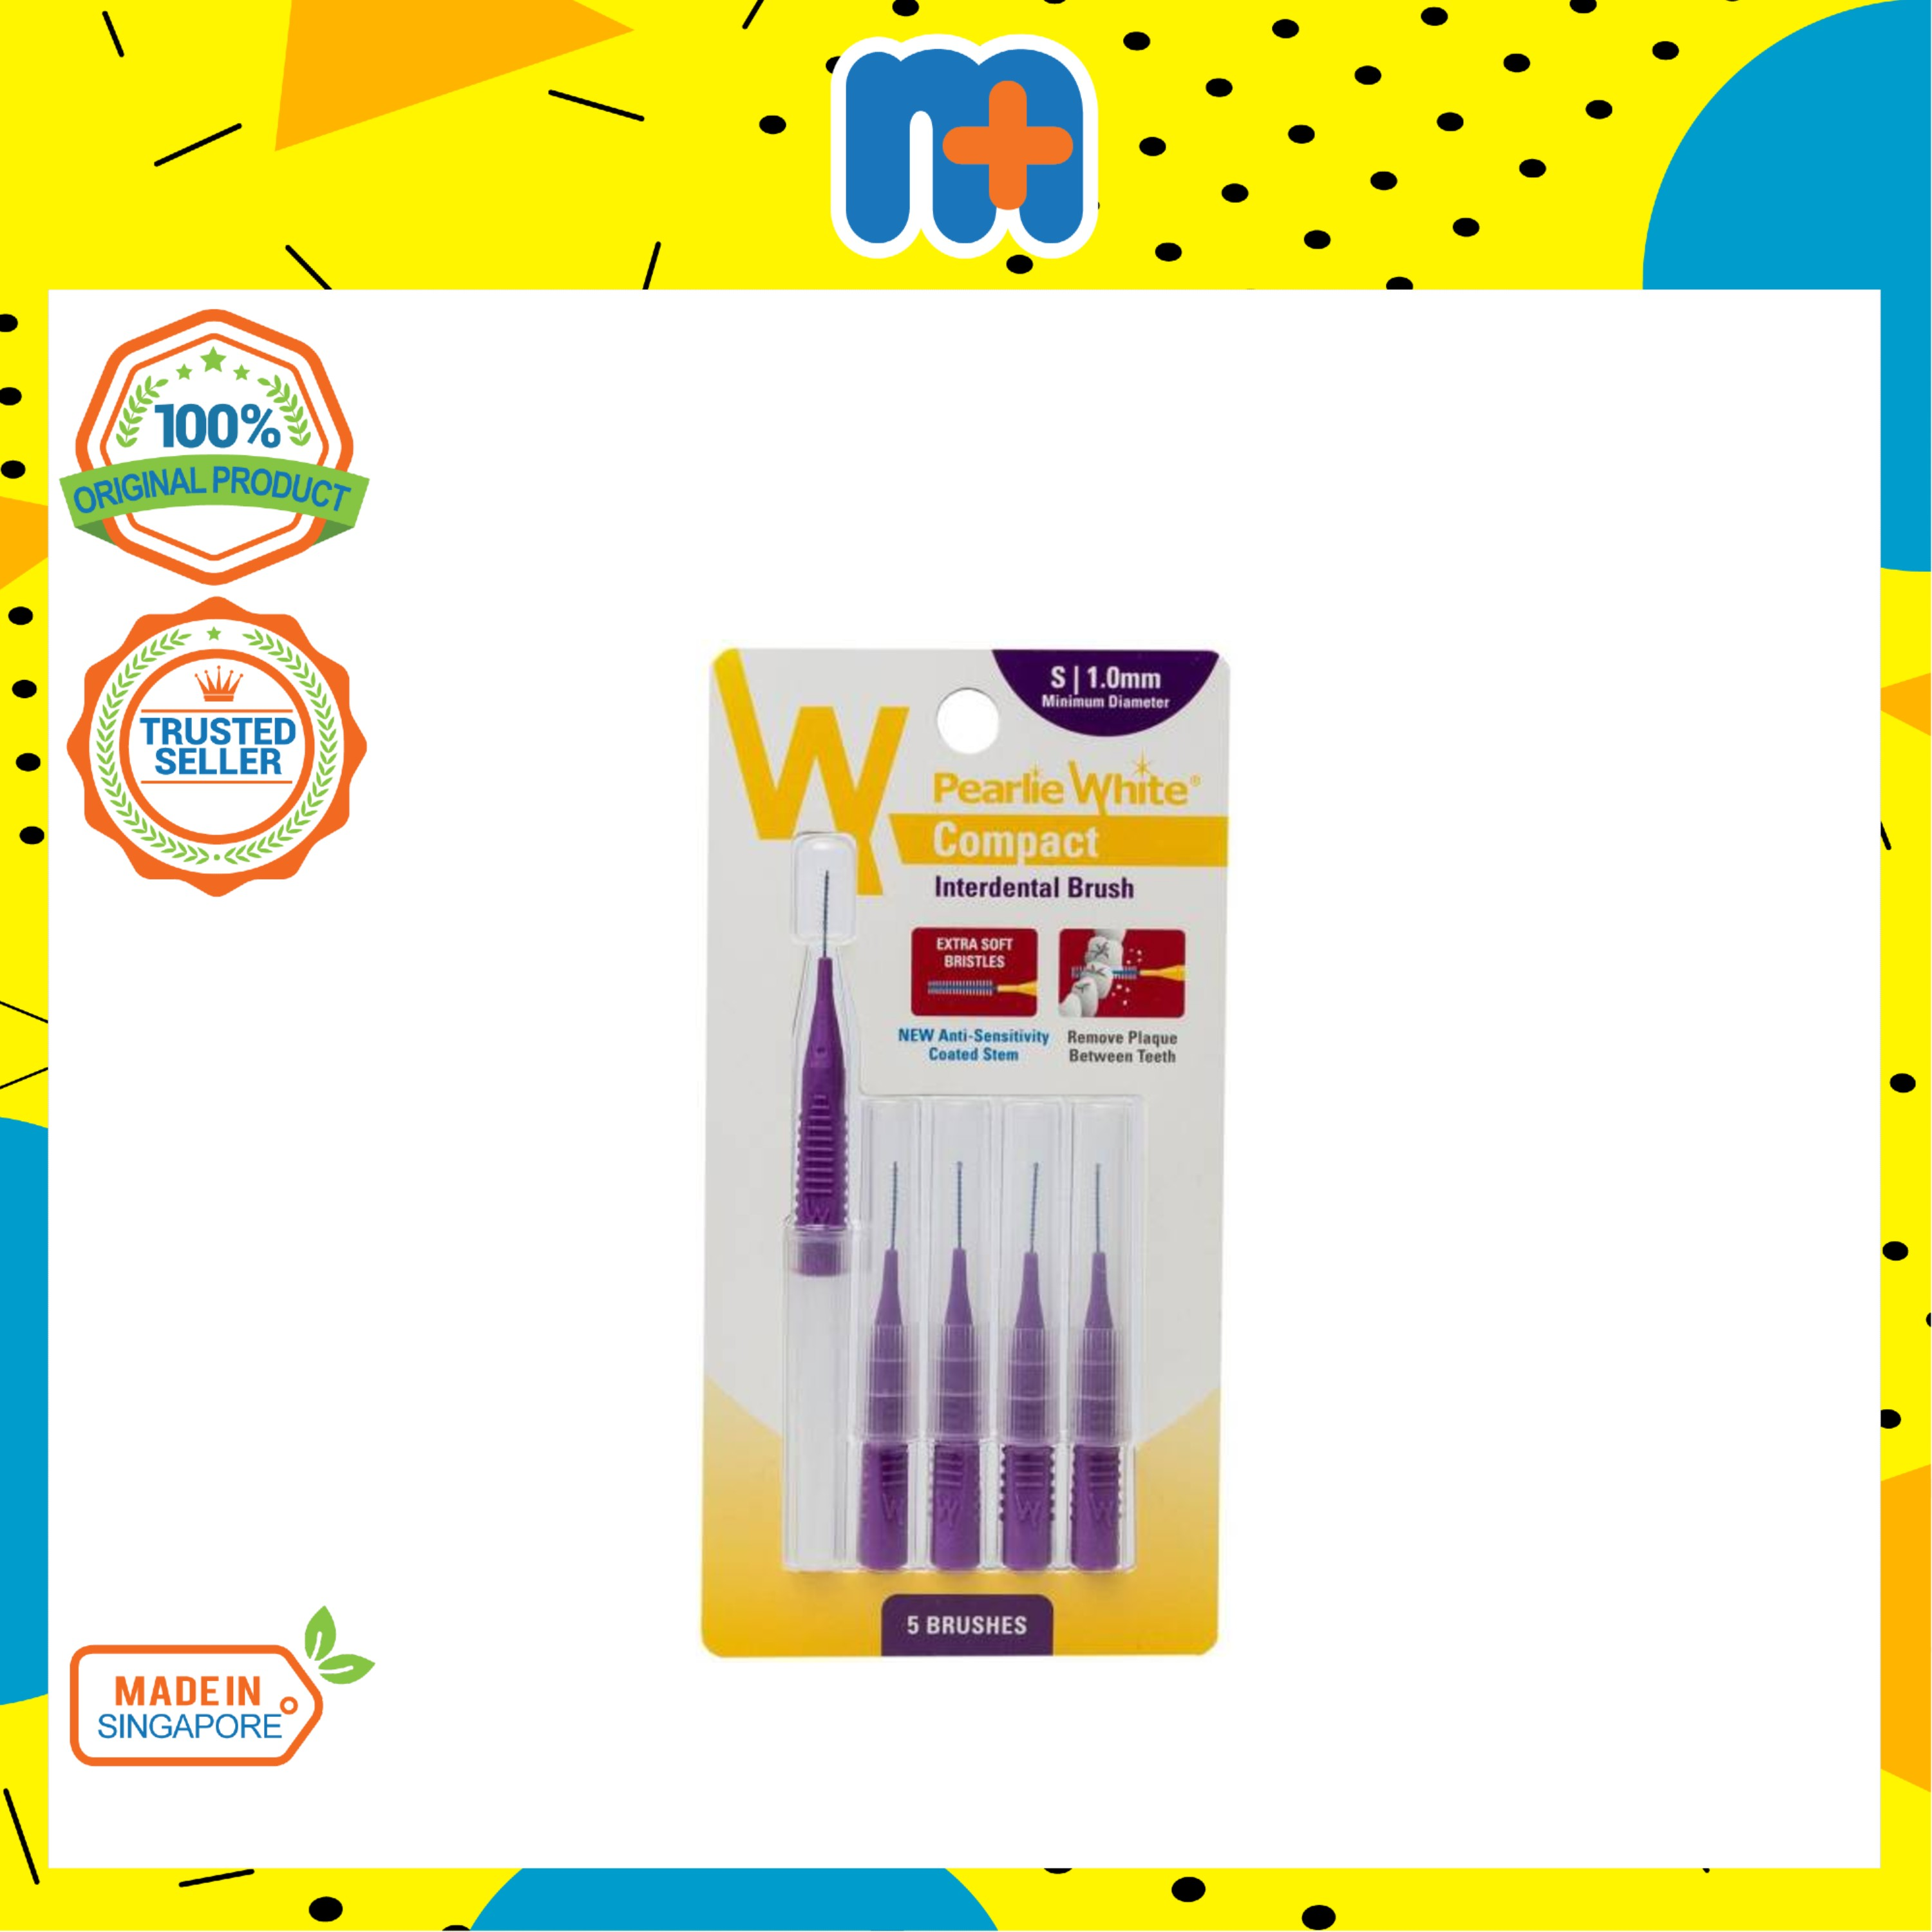 [MPLUS] PEARLIE WHITE Compact Interdental Brush S 1mm 5s